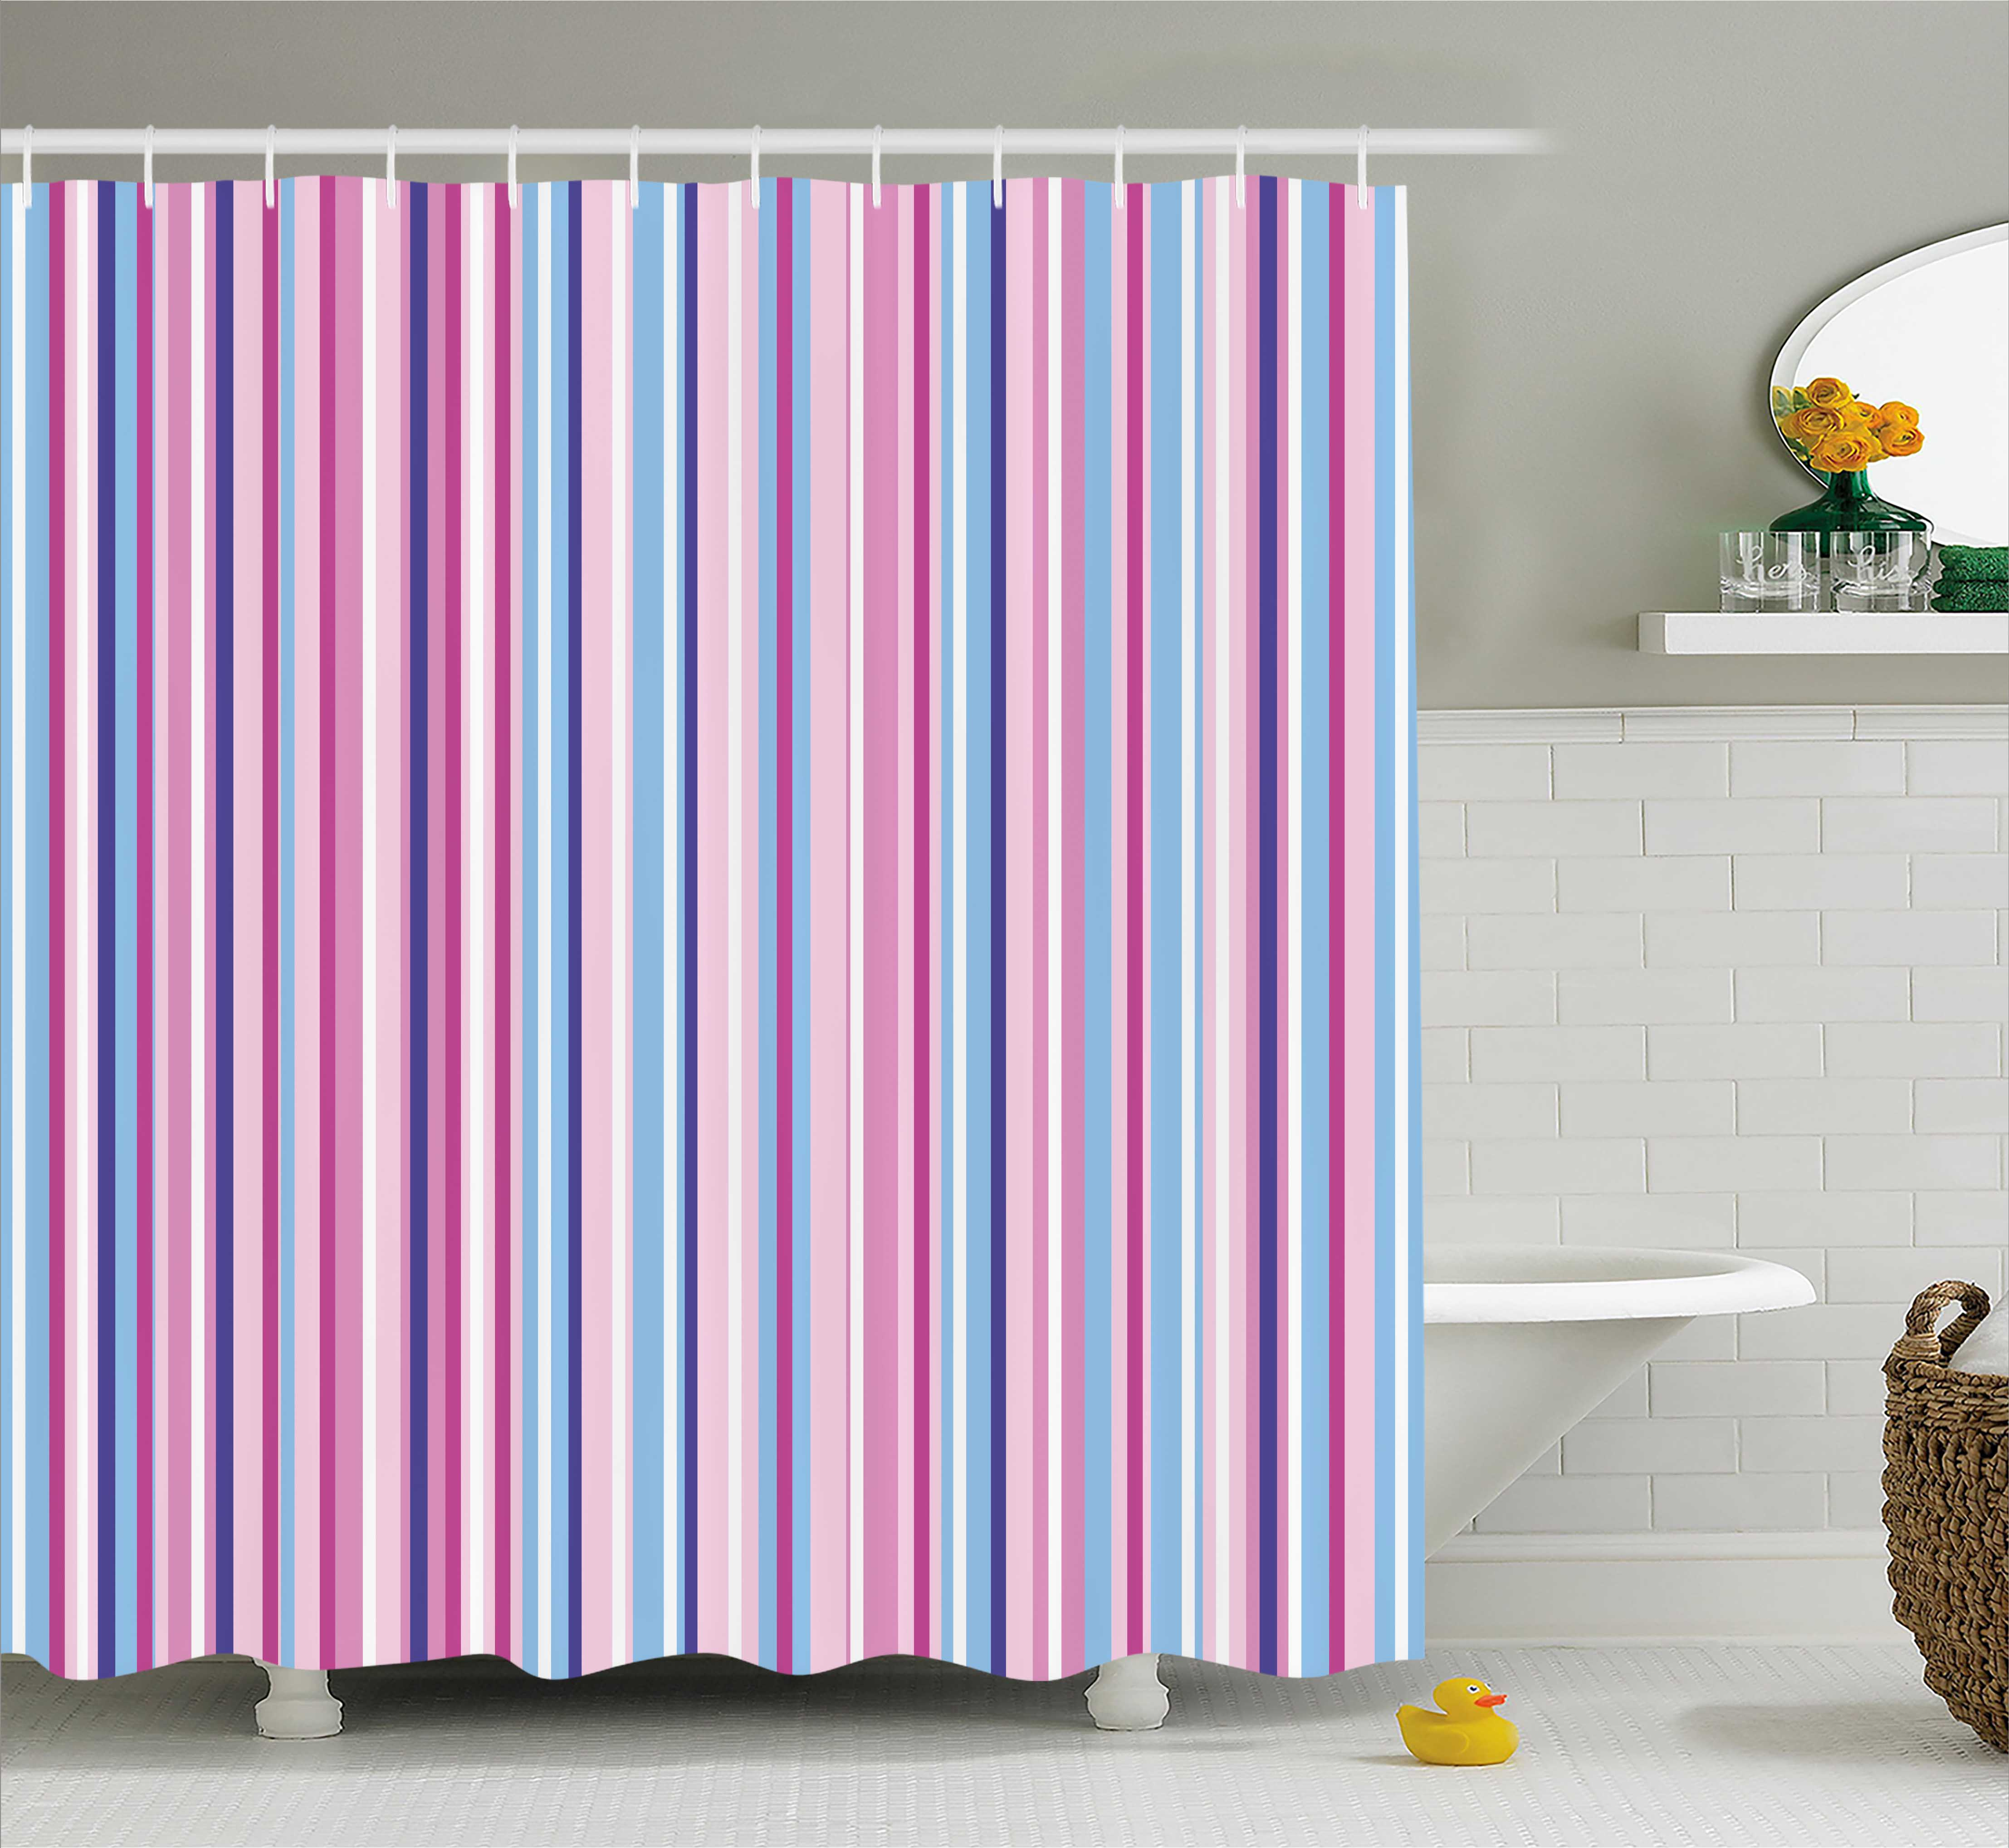 Baby Blue Bathroom Set: Abstract Shower Curtain, Vertical Striped Gradient